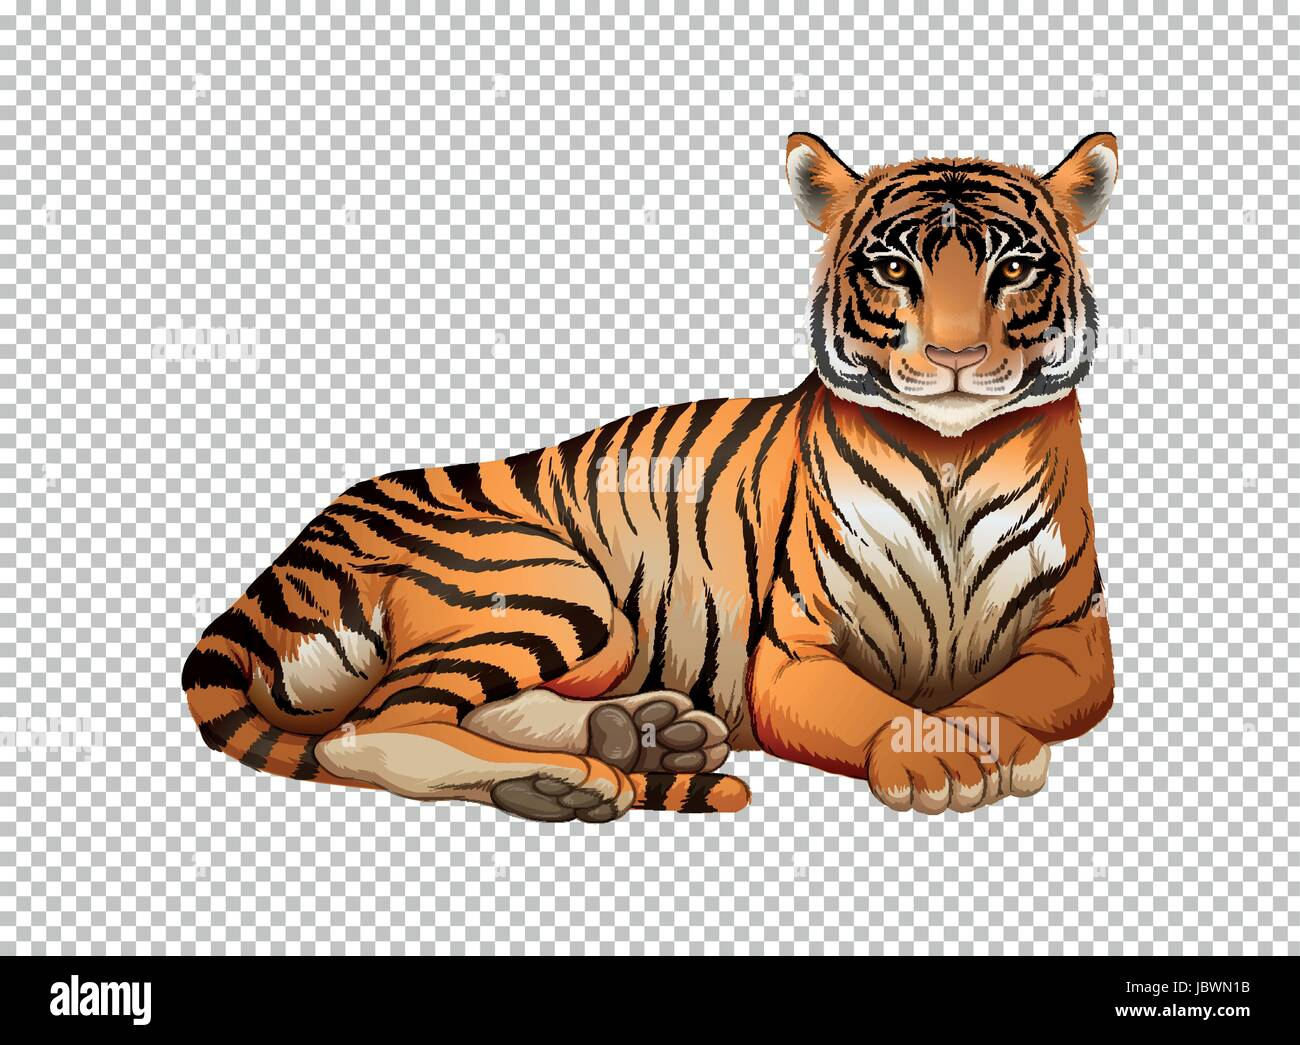 wild tiger on transparent background illustration stock vector art